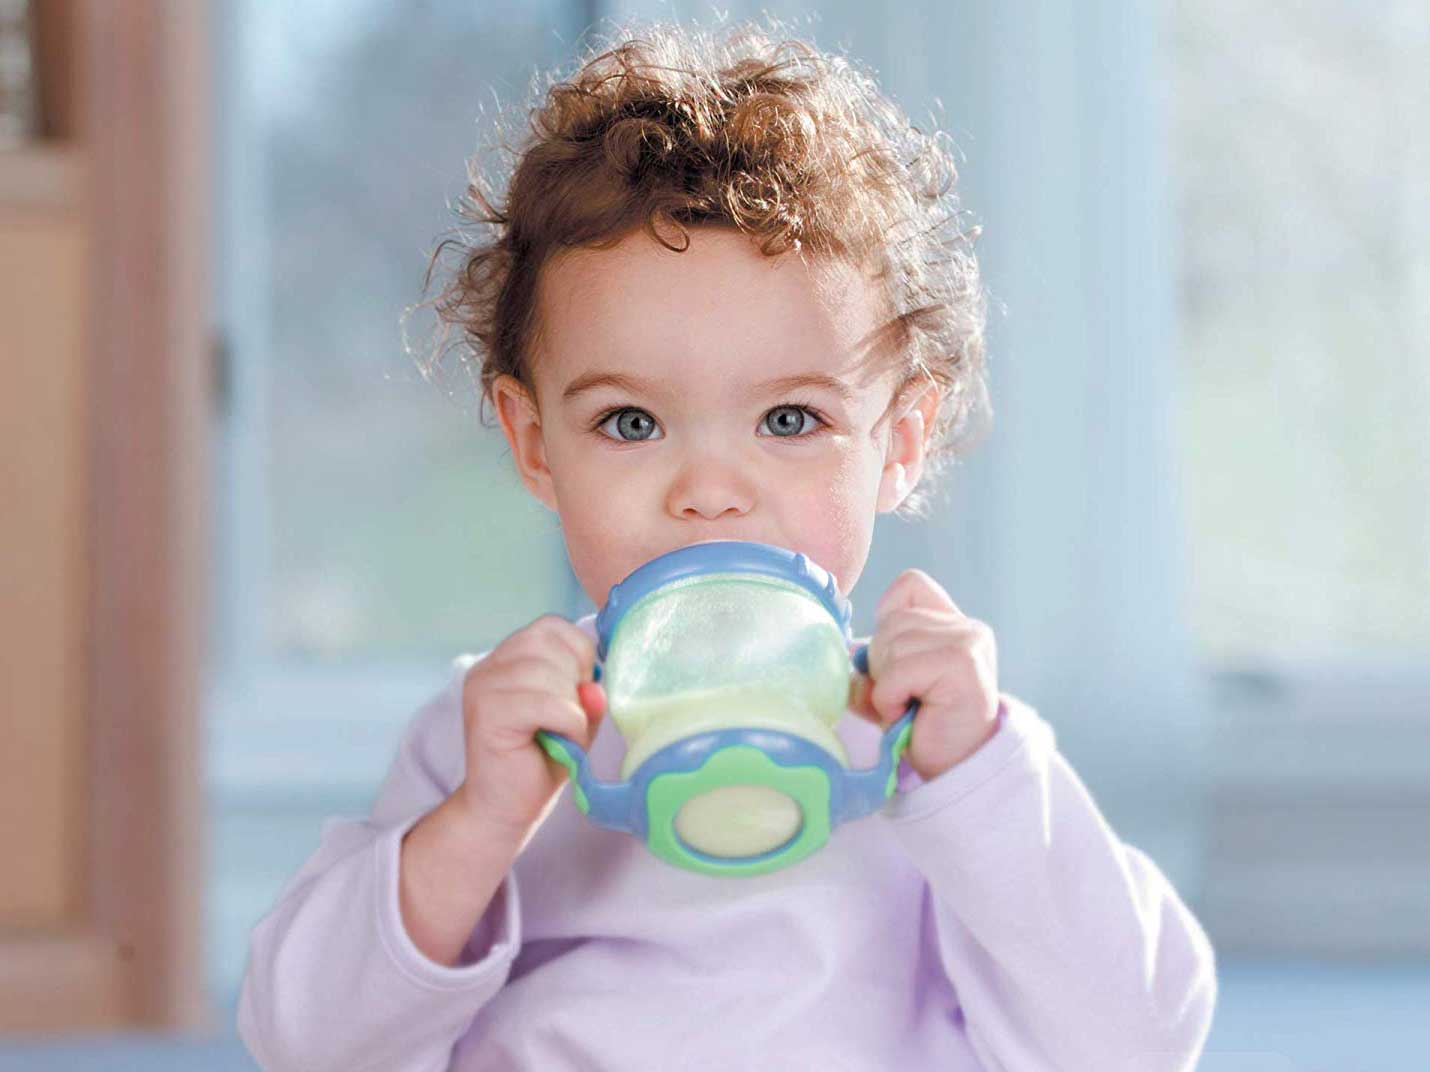 Baby drinking formula out of sippy cup